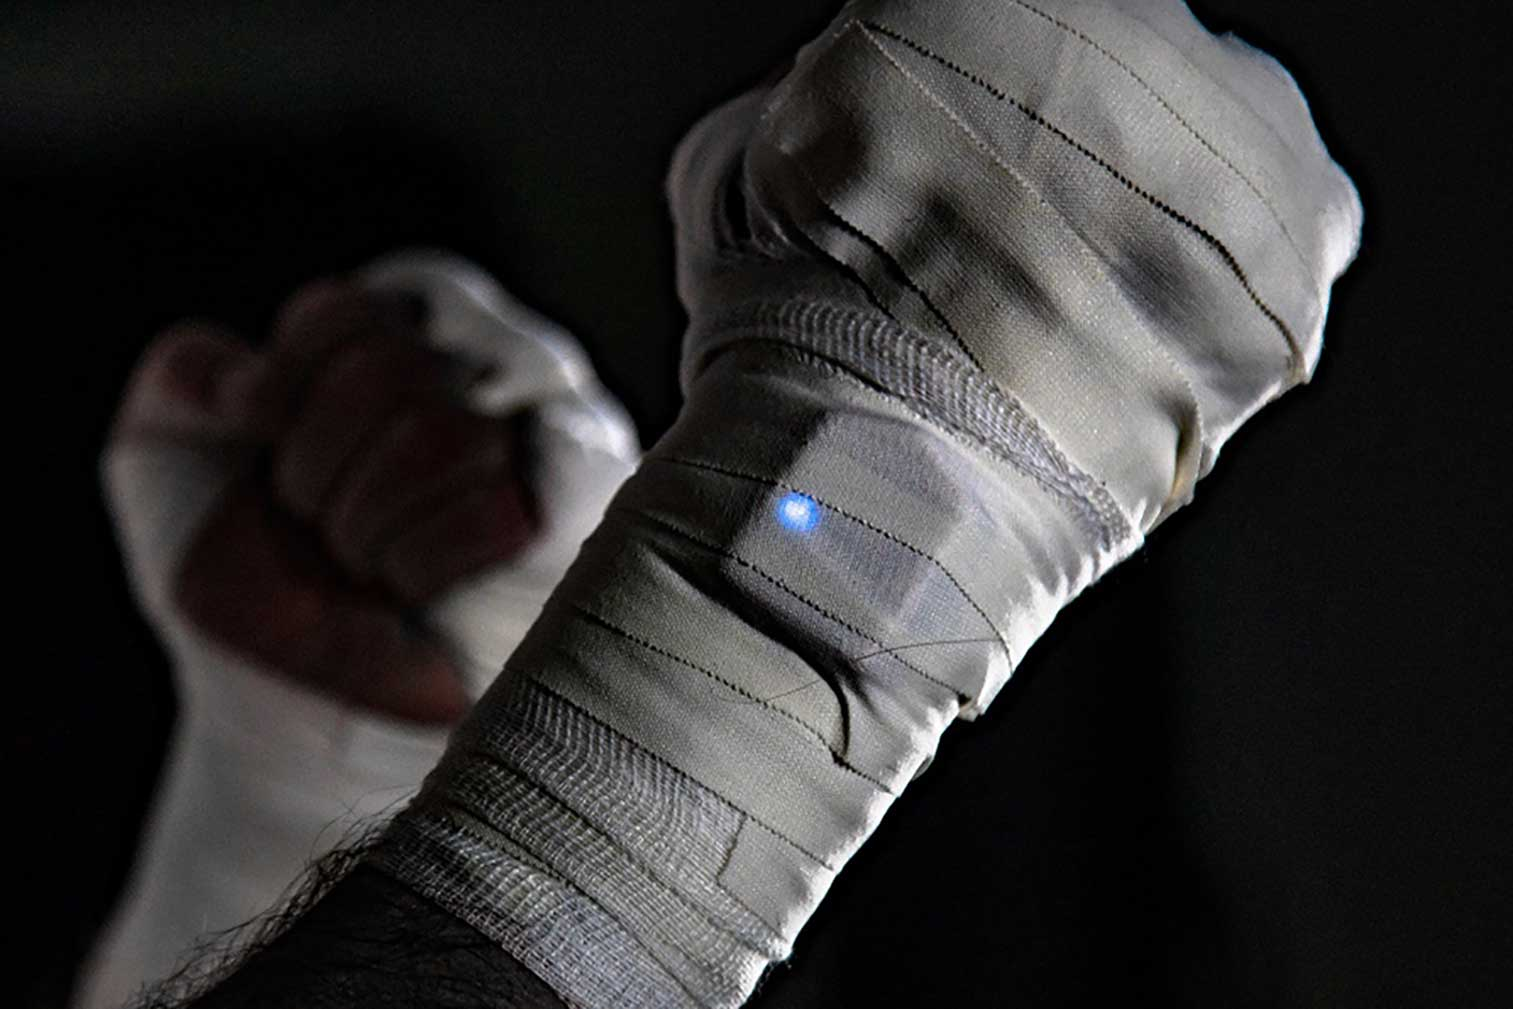 Developing a fast-moving wearable device – a punch tracker for boxers